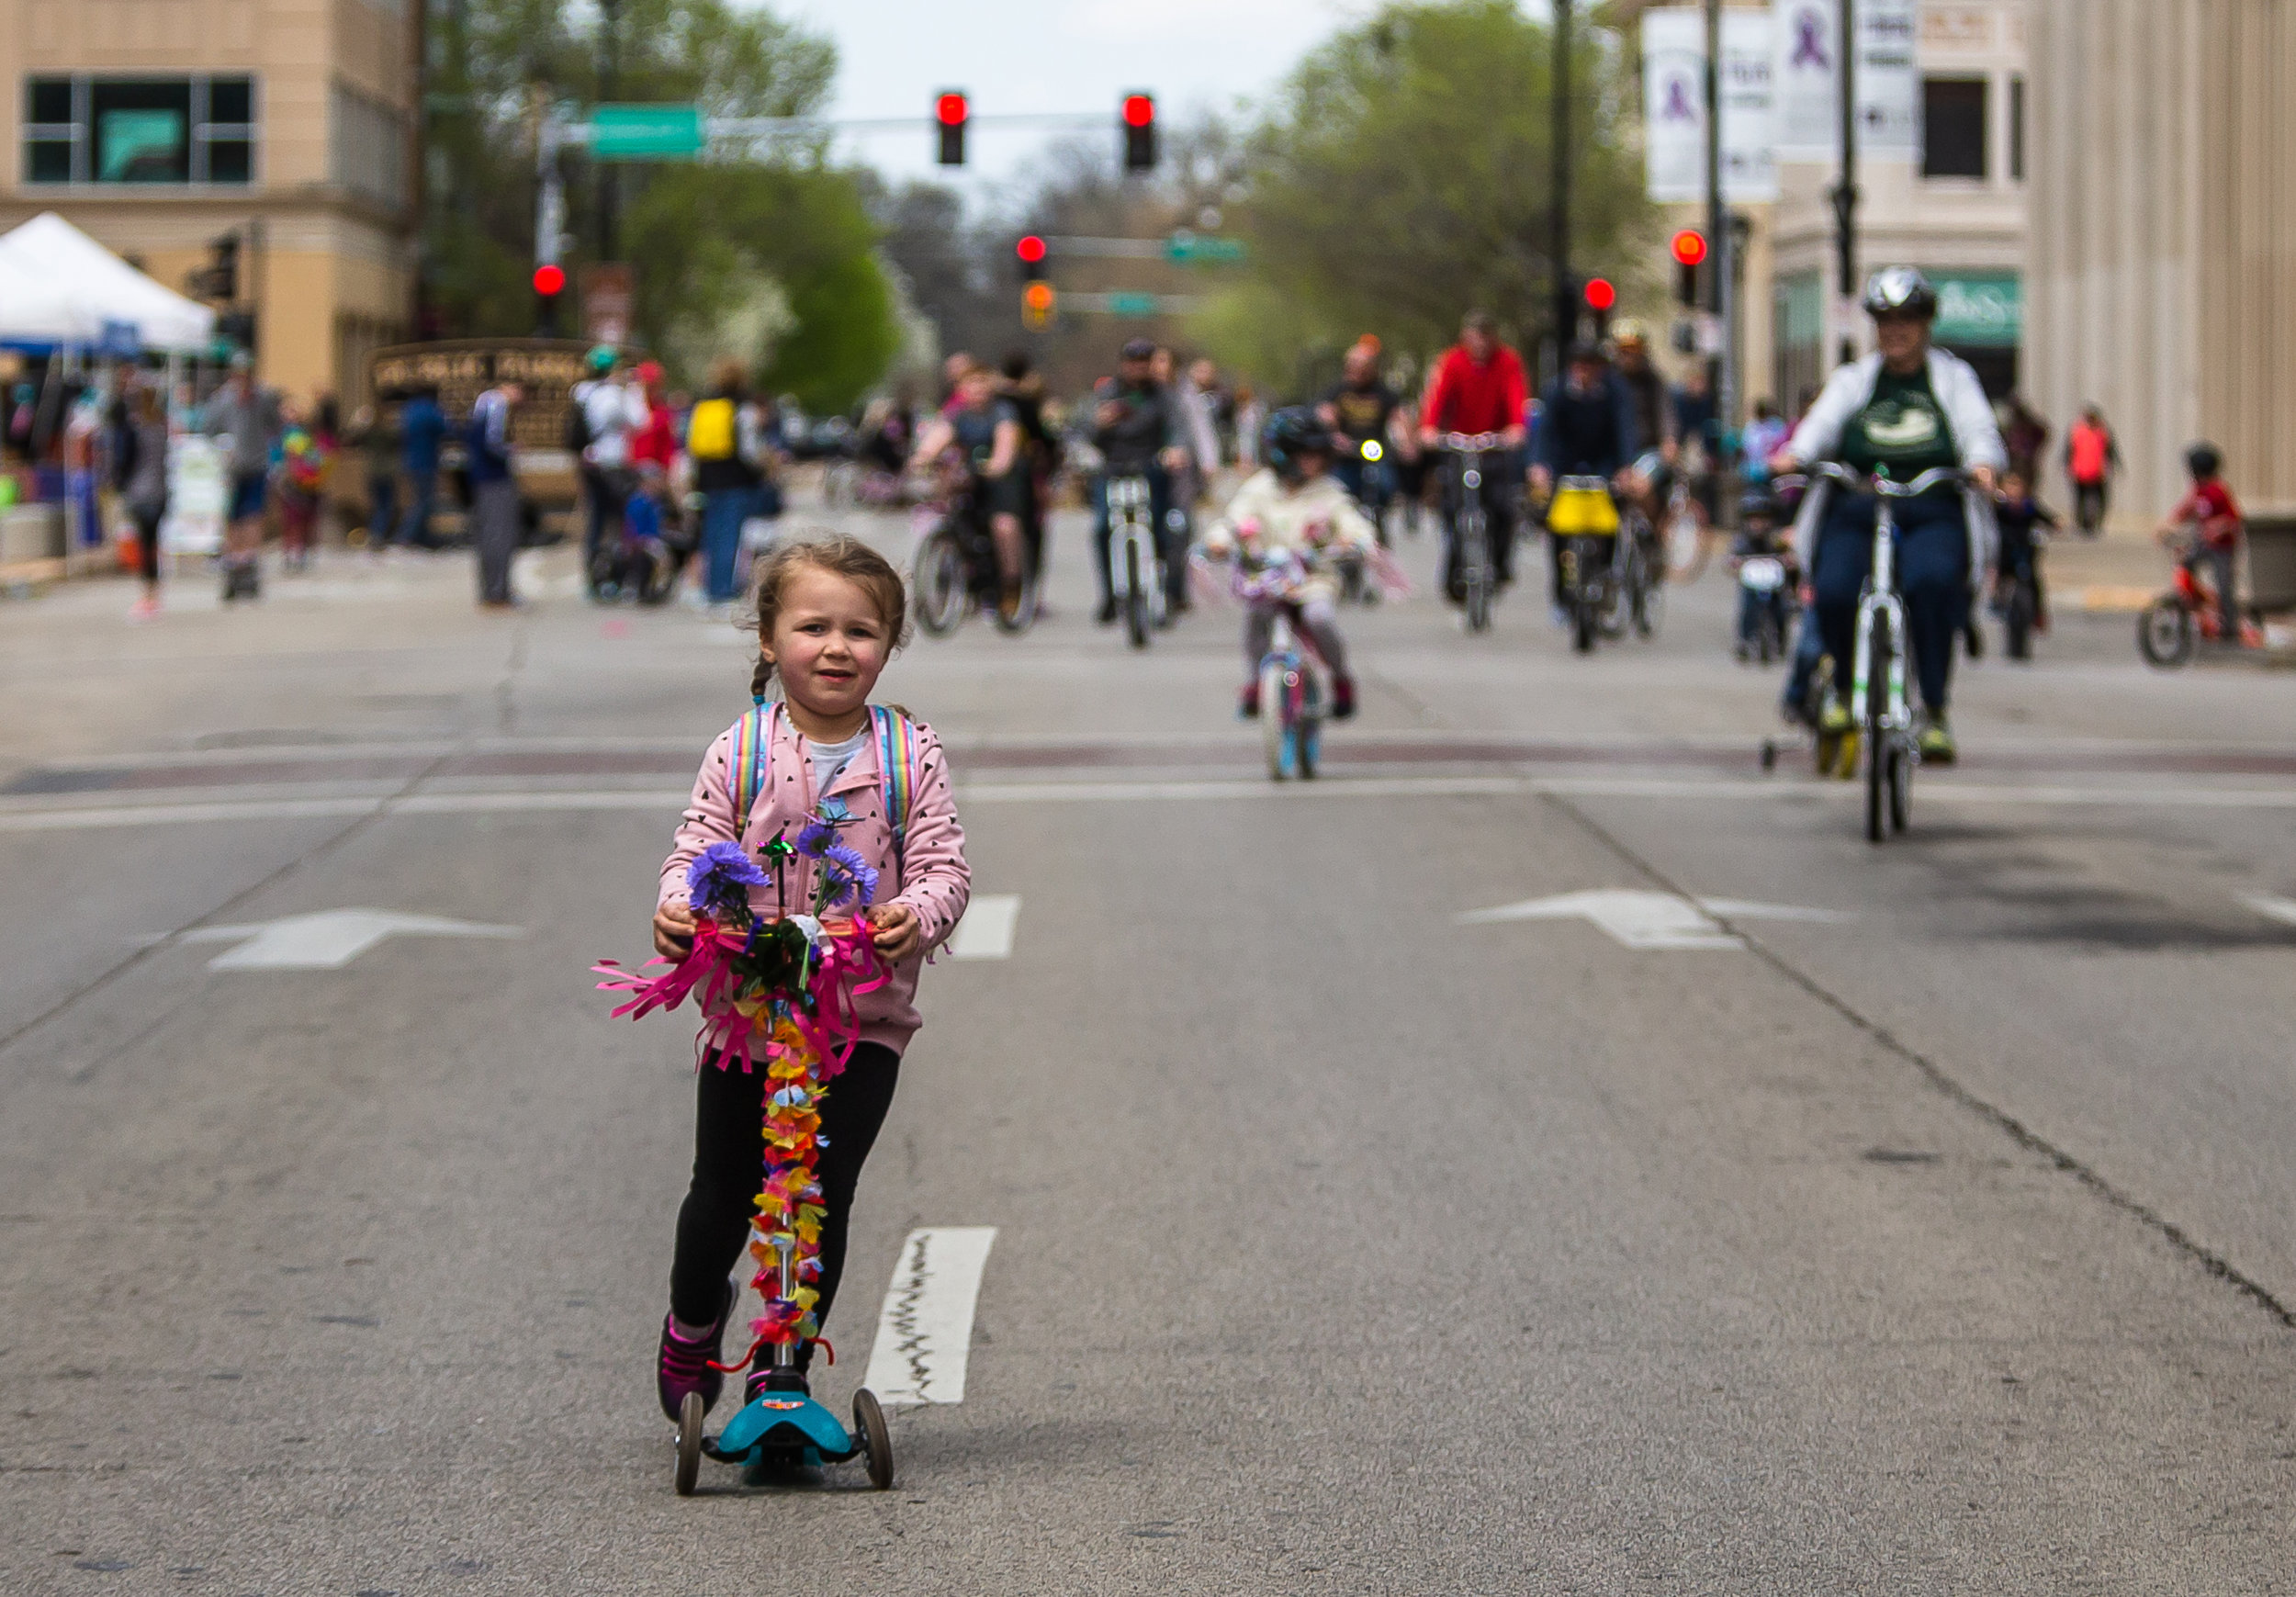 """Ellie Sabo, 4, rides a scooter down Sixth Street during the Downtown Open Streets event, Saturday, April 28, 2018, in Springfield, Ill. Downtown Open Streets was an event put on by Downtown Springfield, Inc. and sponsored by Memorial Health System, and created a """"paved park"""" by temporarily closing certain downtown streets and holding demonstrations promoting recreation and healthier living. [Justin L. Fowler/The State Journal-Register]"""